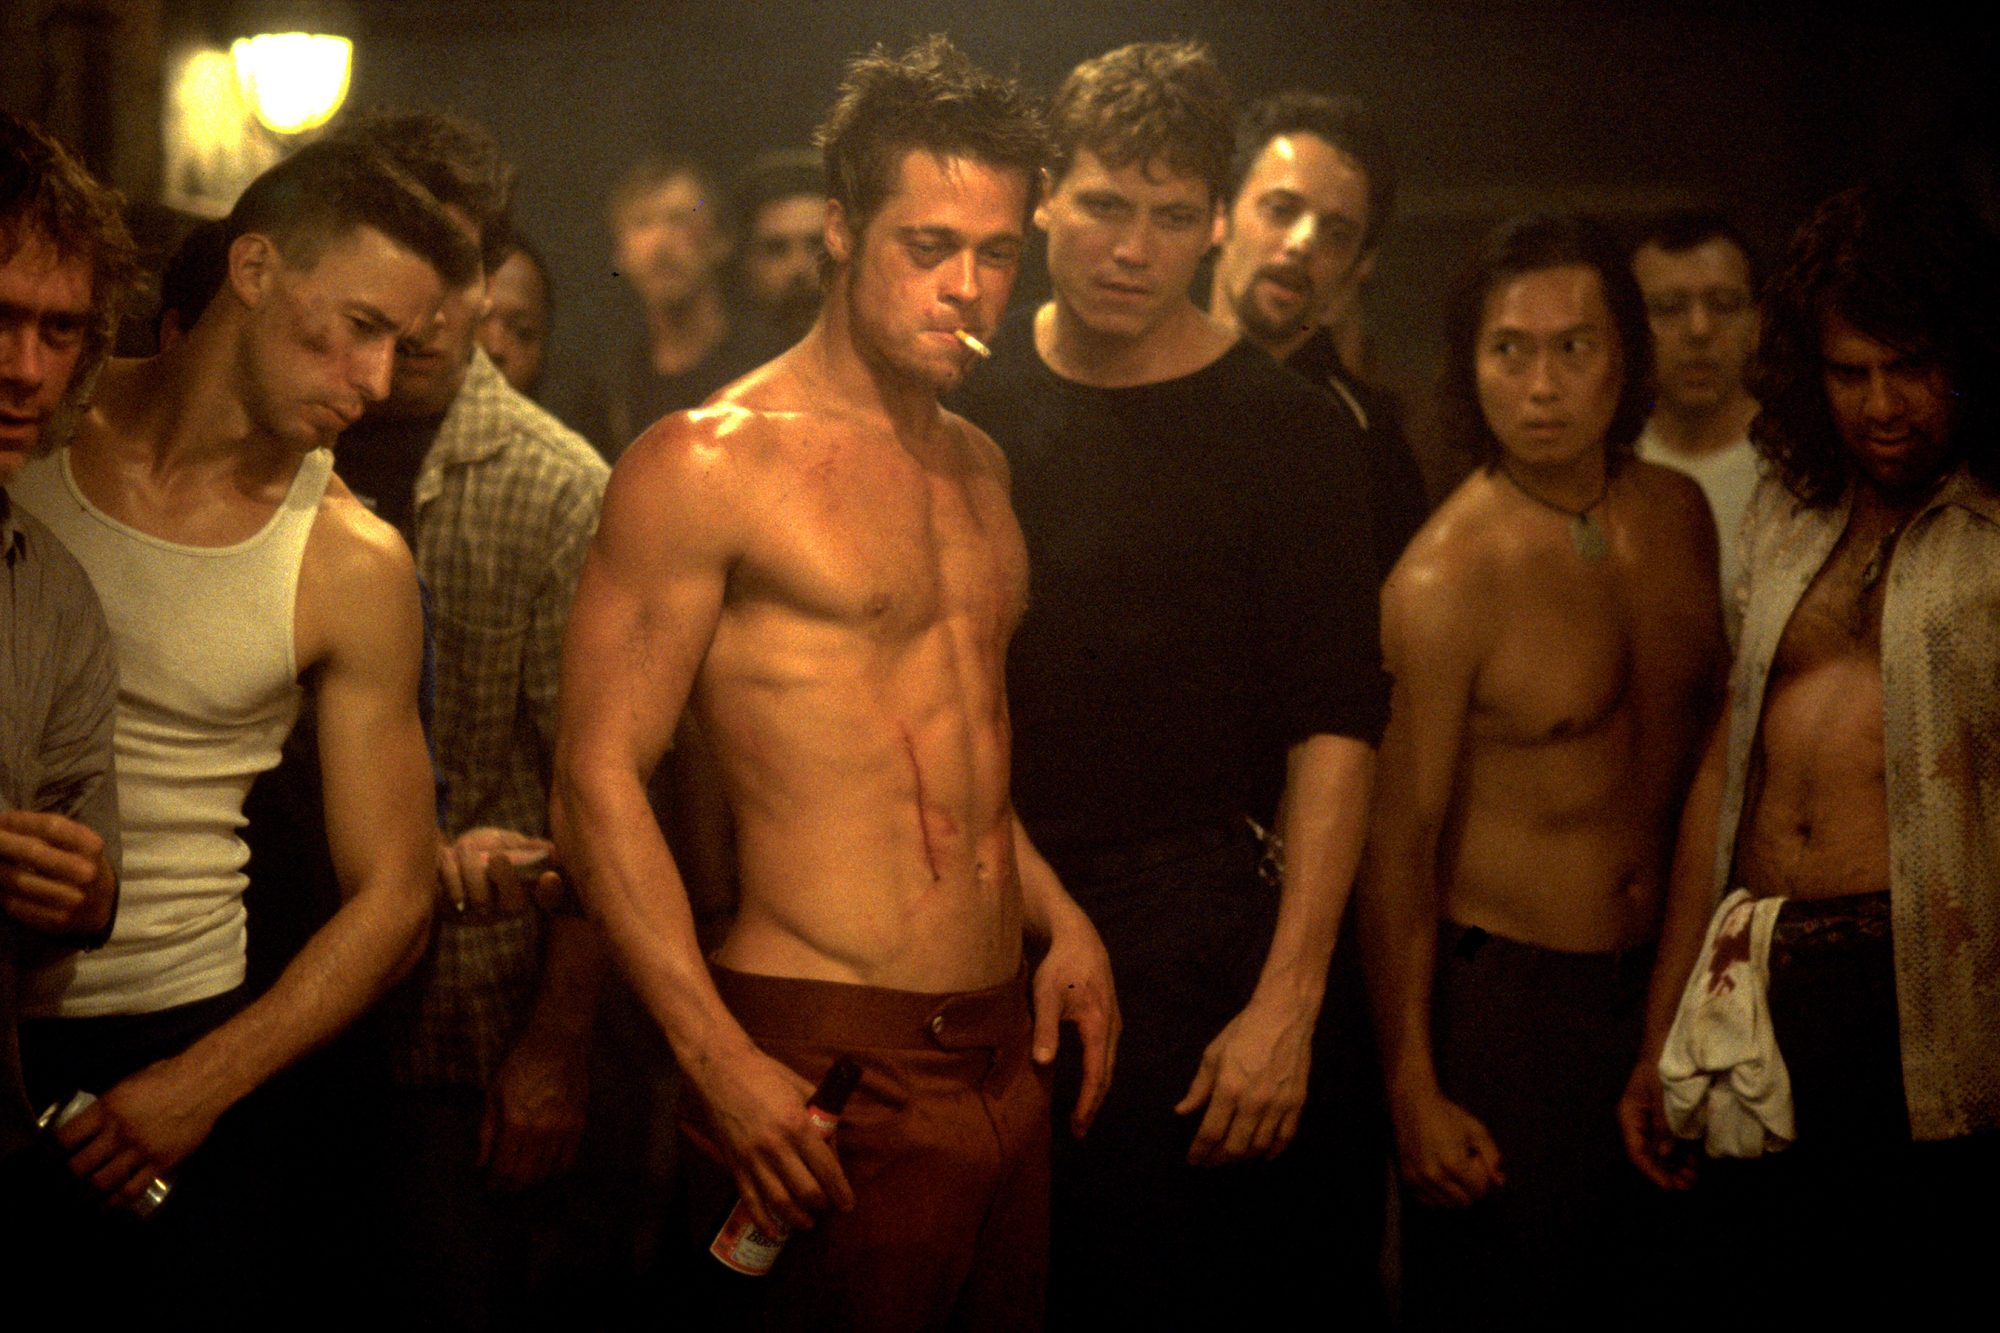 FIGHT CLUB (1999)Brad PittMerrick MortonFox